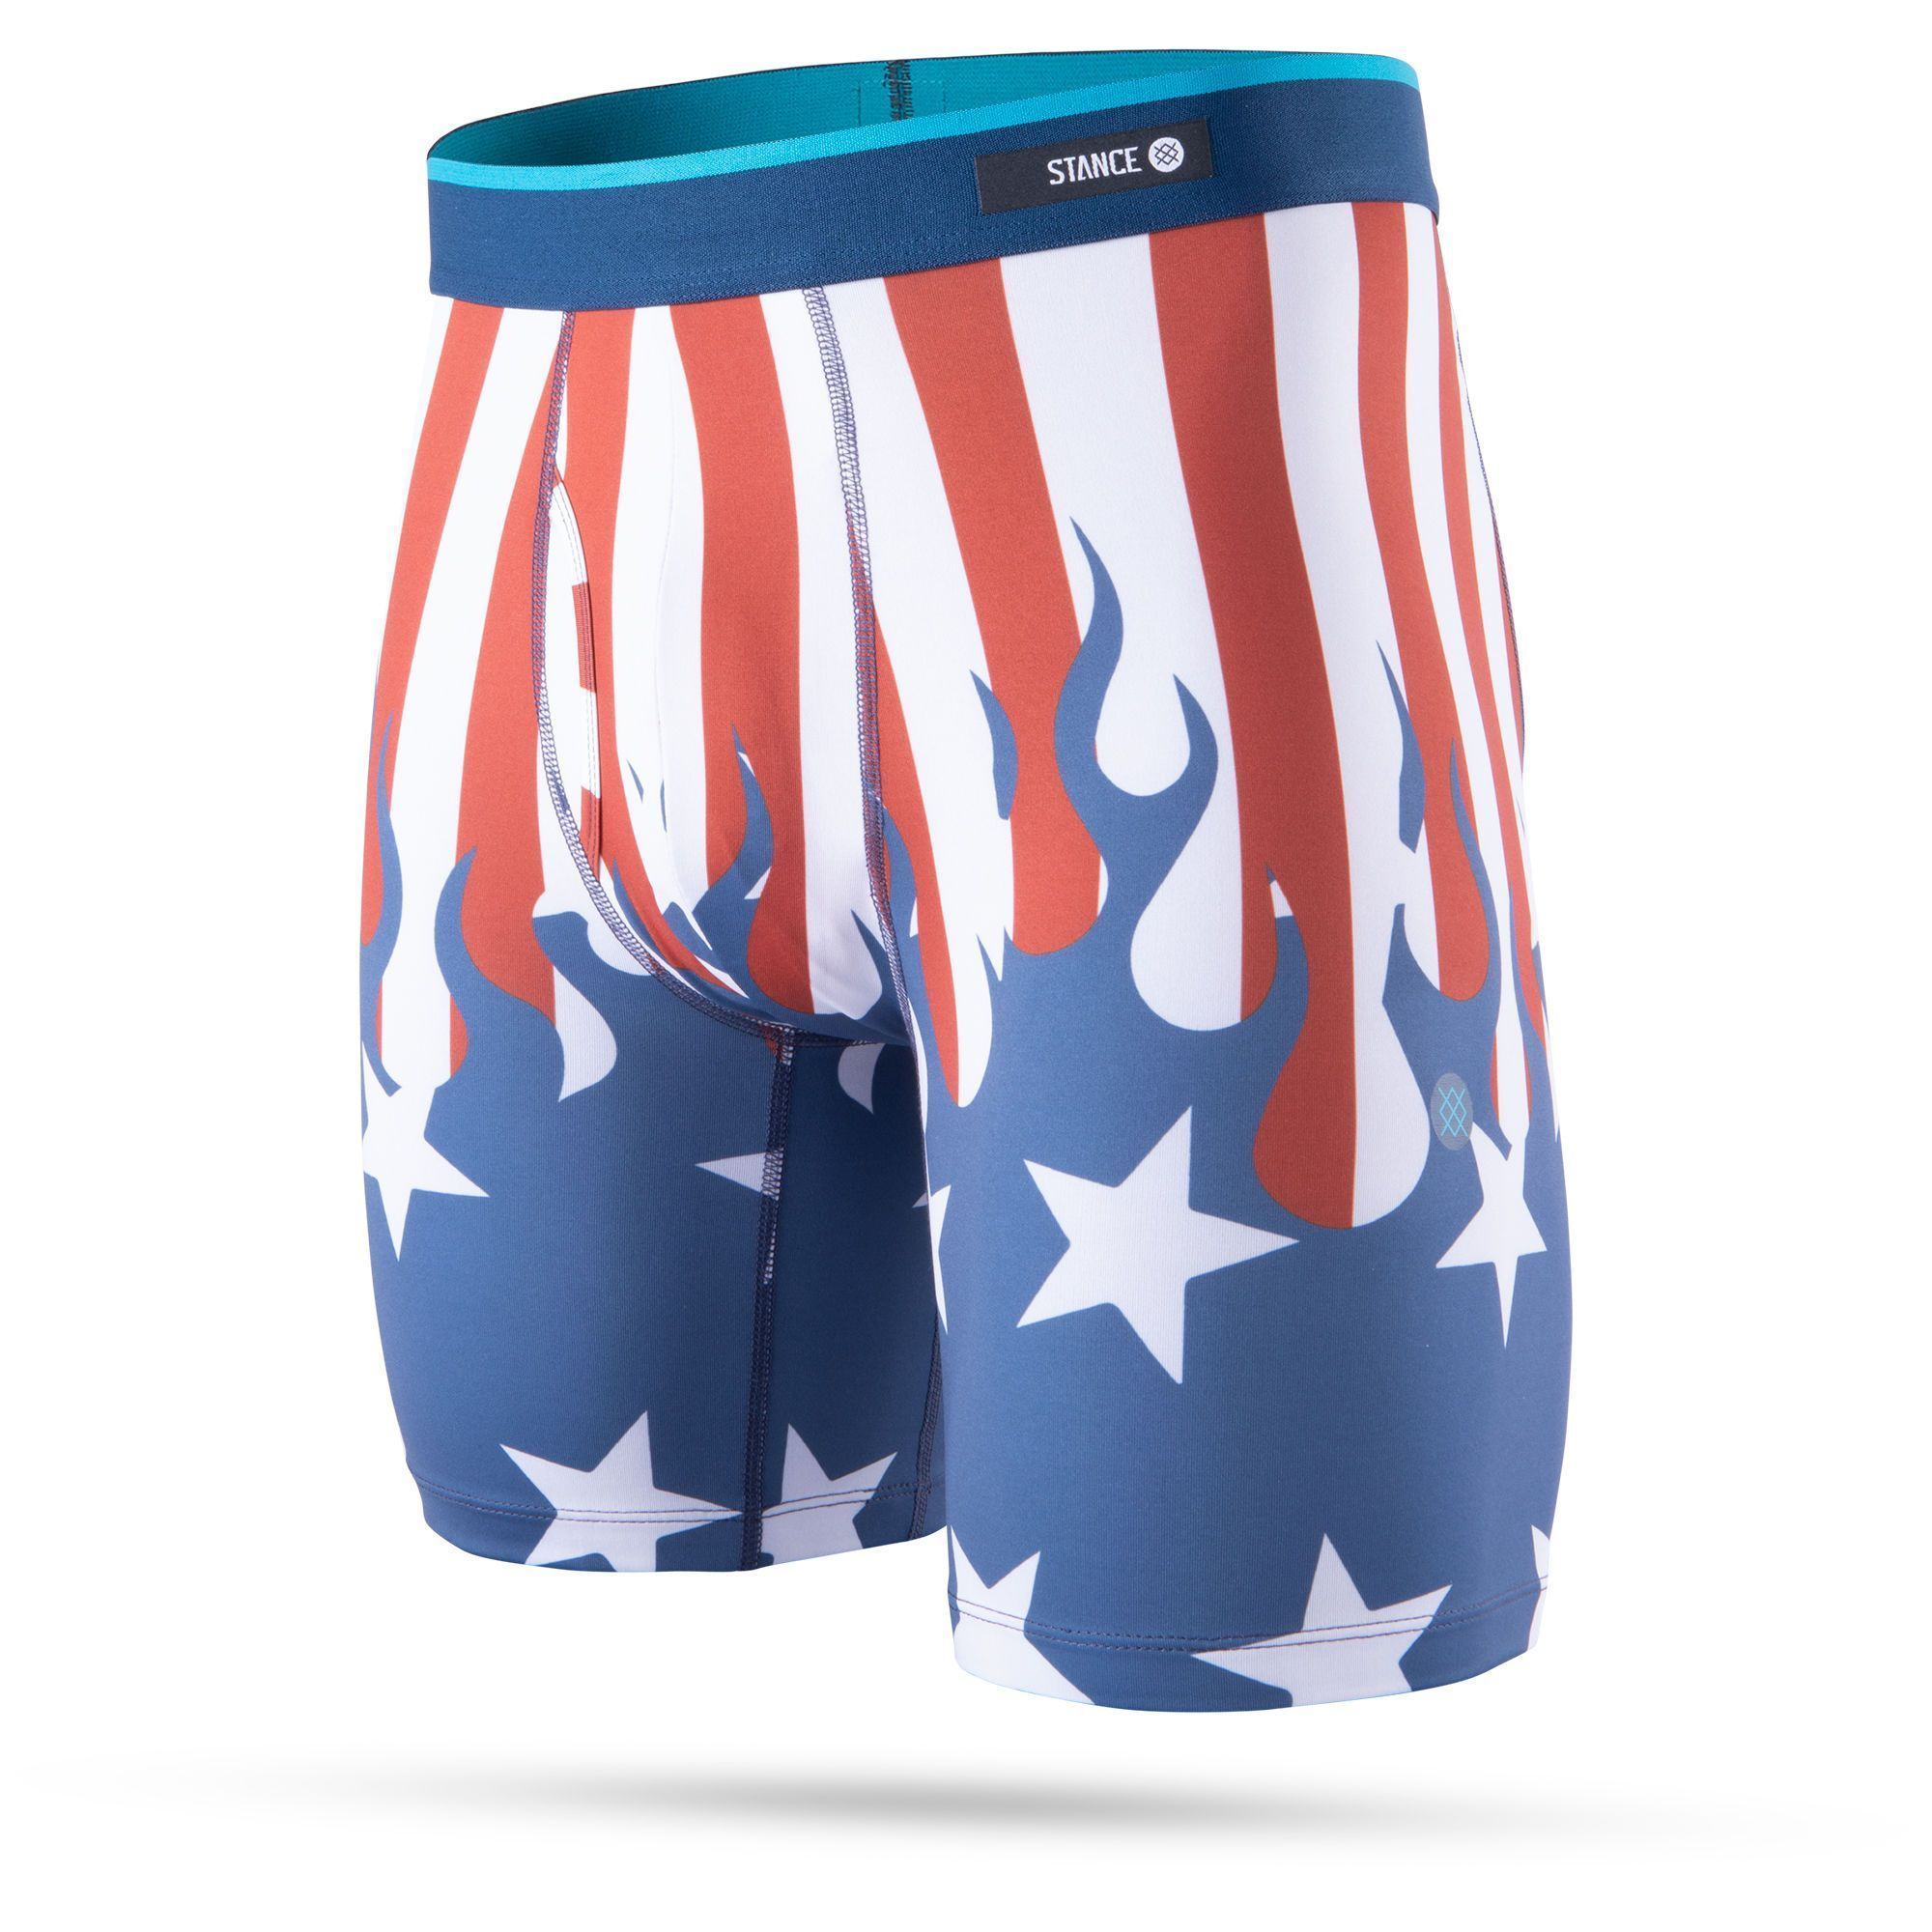 Stance - The Brave Boxer Brief Underwear | Men's - Knock Your Socks Off